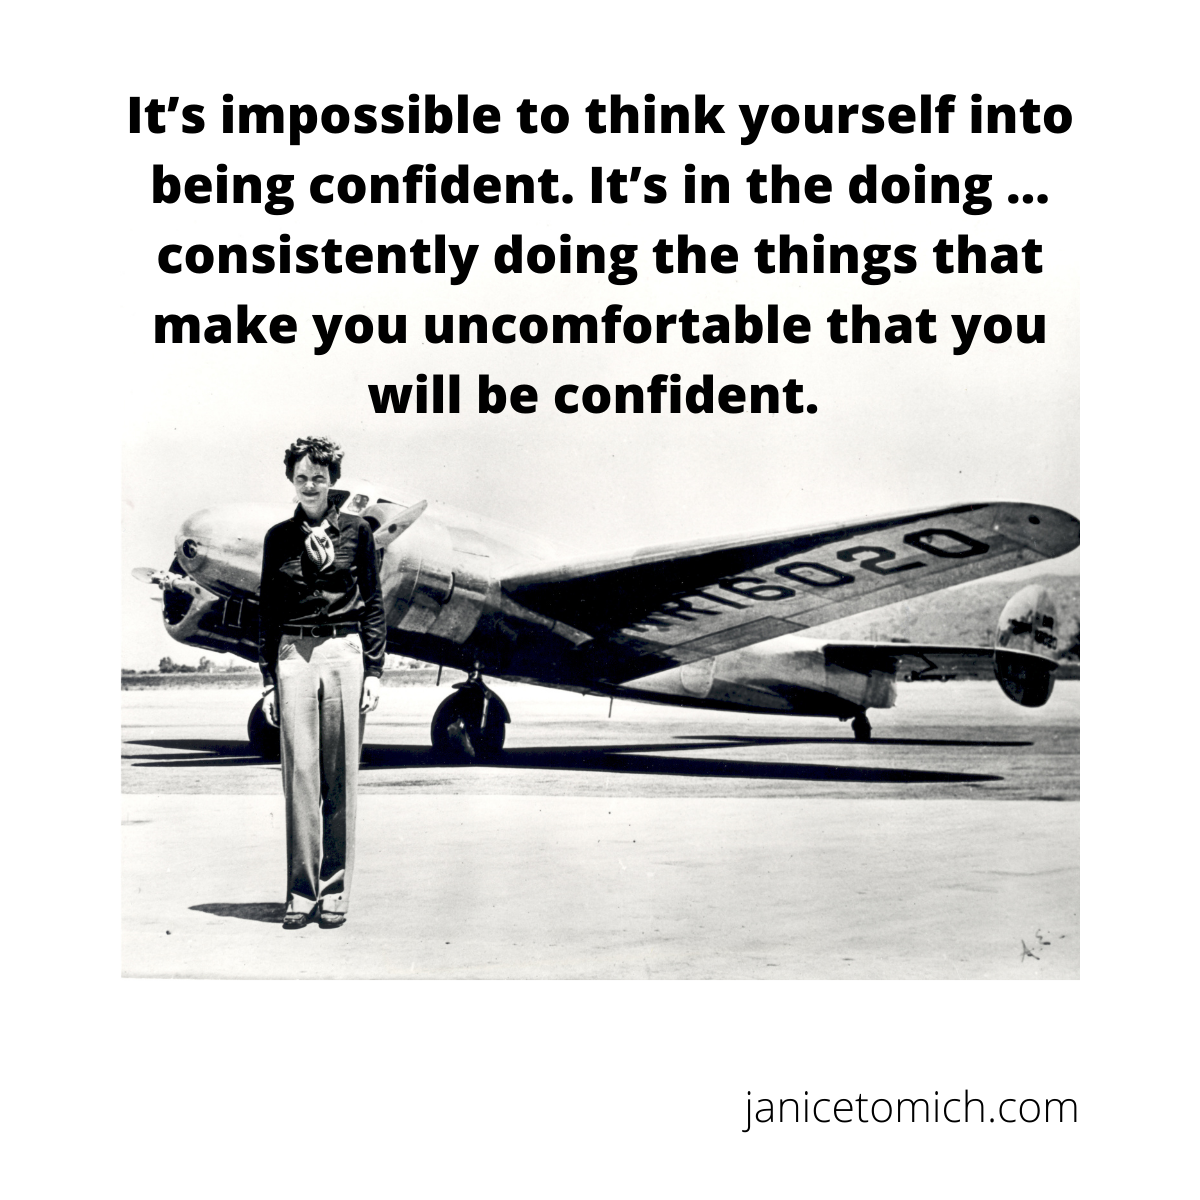 """Inspirational quote by by Janice Tomich about women public speaking """"It's impossible to think yourself into being confident. It's in the doing ... it is through consistently doing the things that make you uncomfortable that you will become confident."""""""